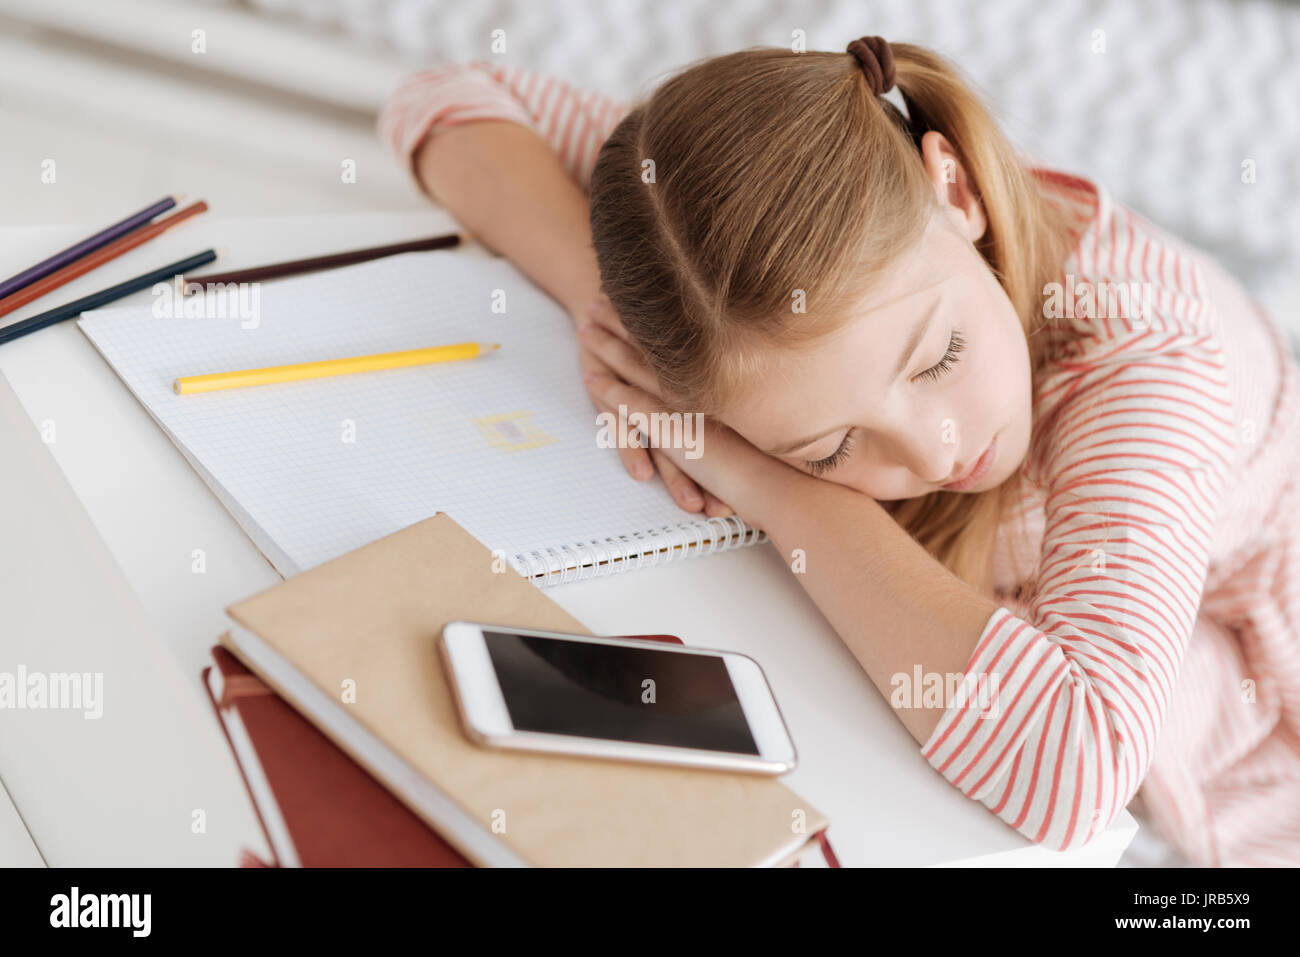 Exhausted child sleeping after drawing - Stock Image